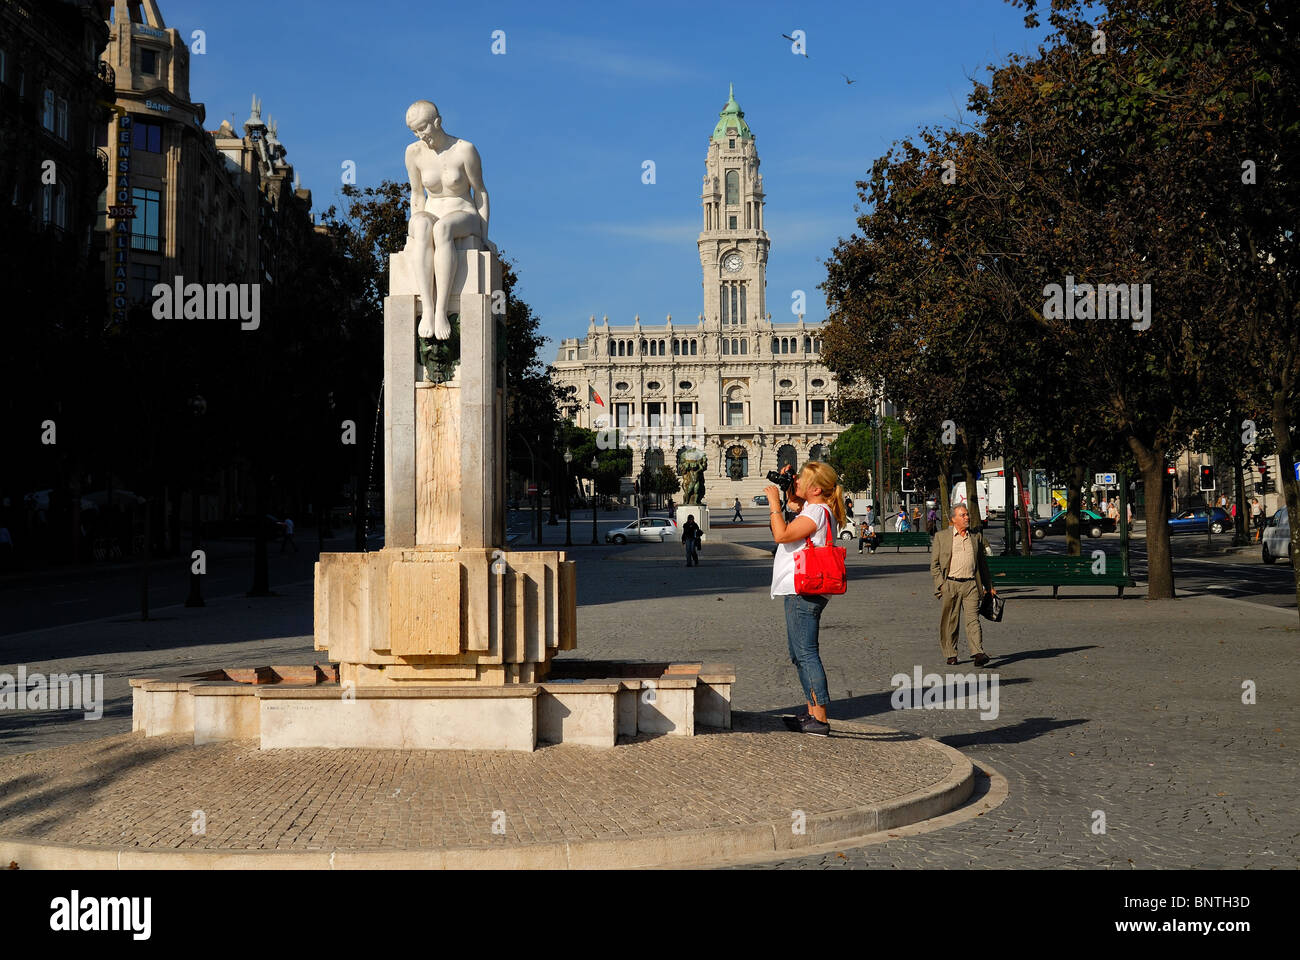 Young lady tourist photographing the sights in Oporto, Portugal. - Stock Image